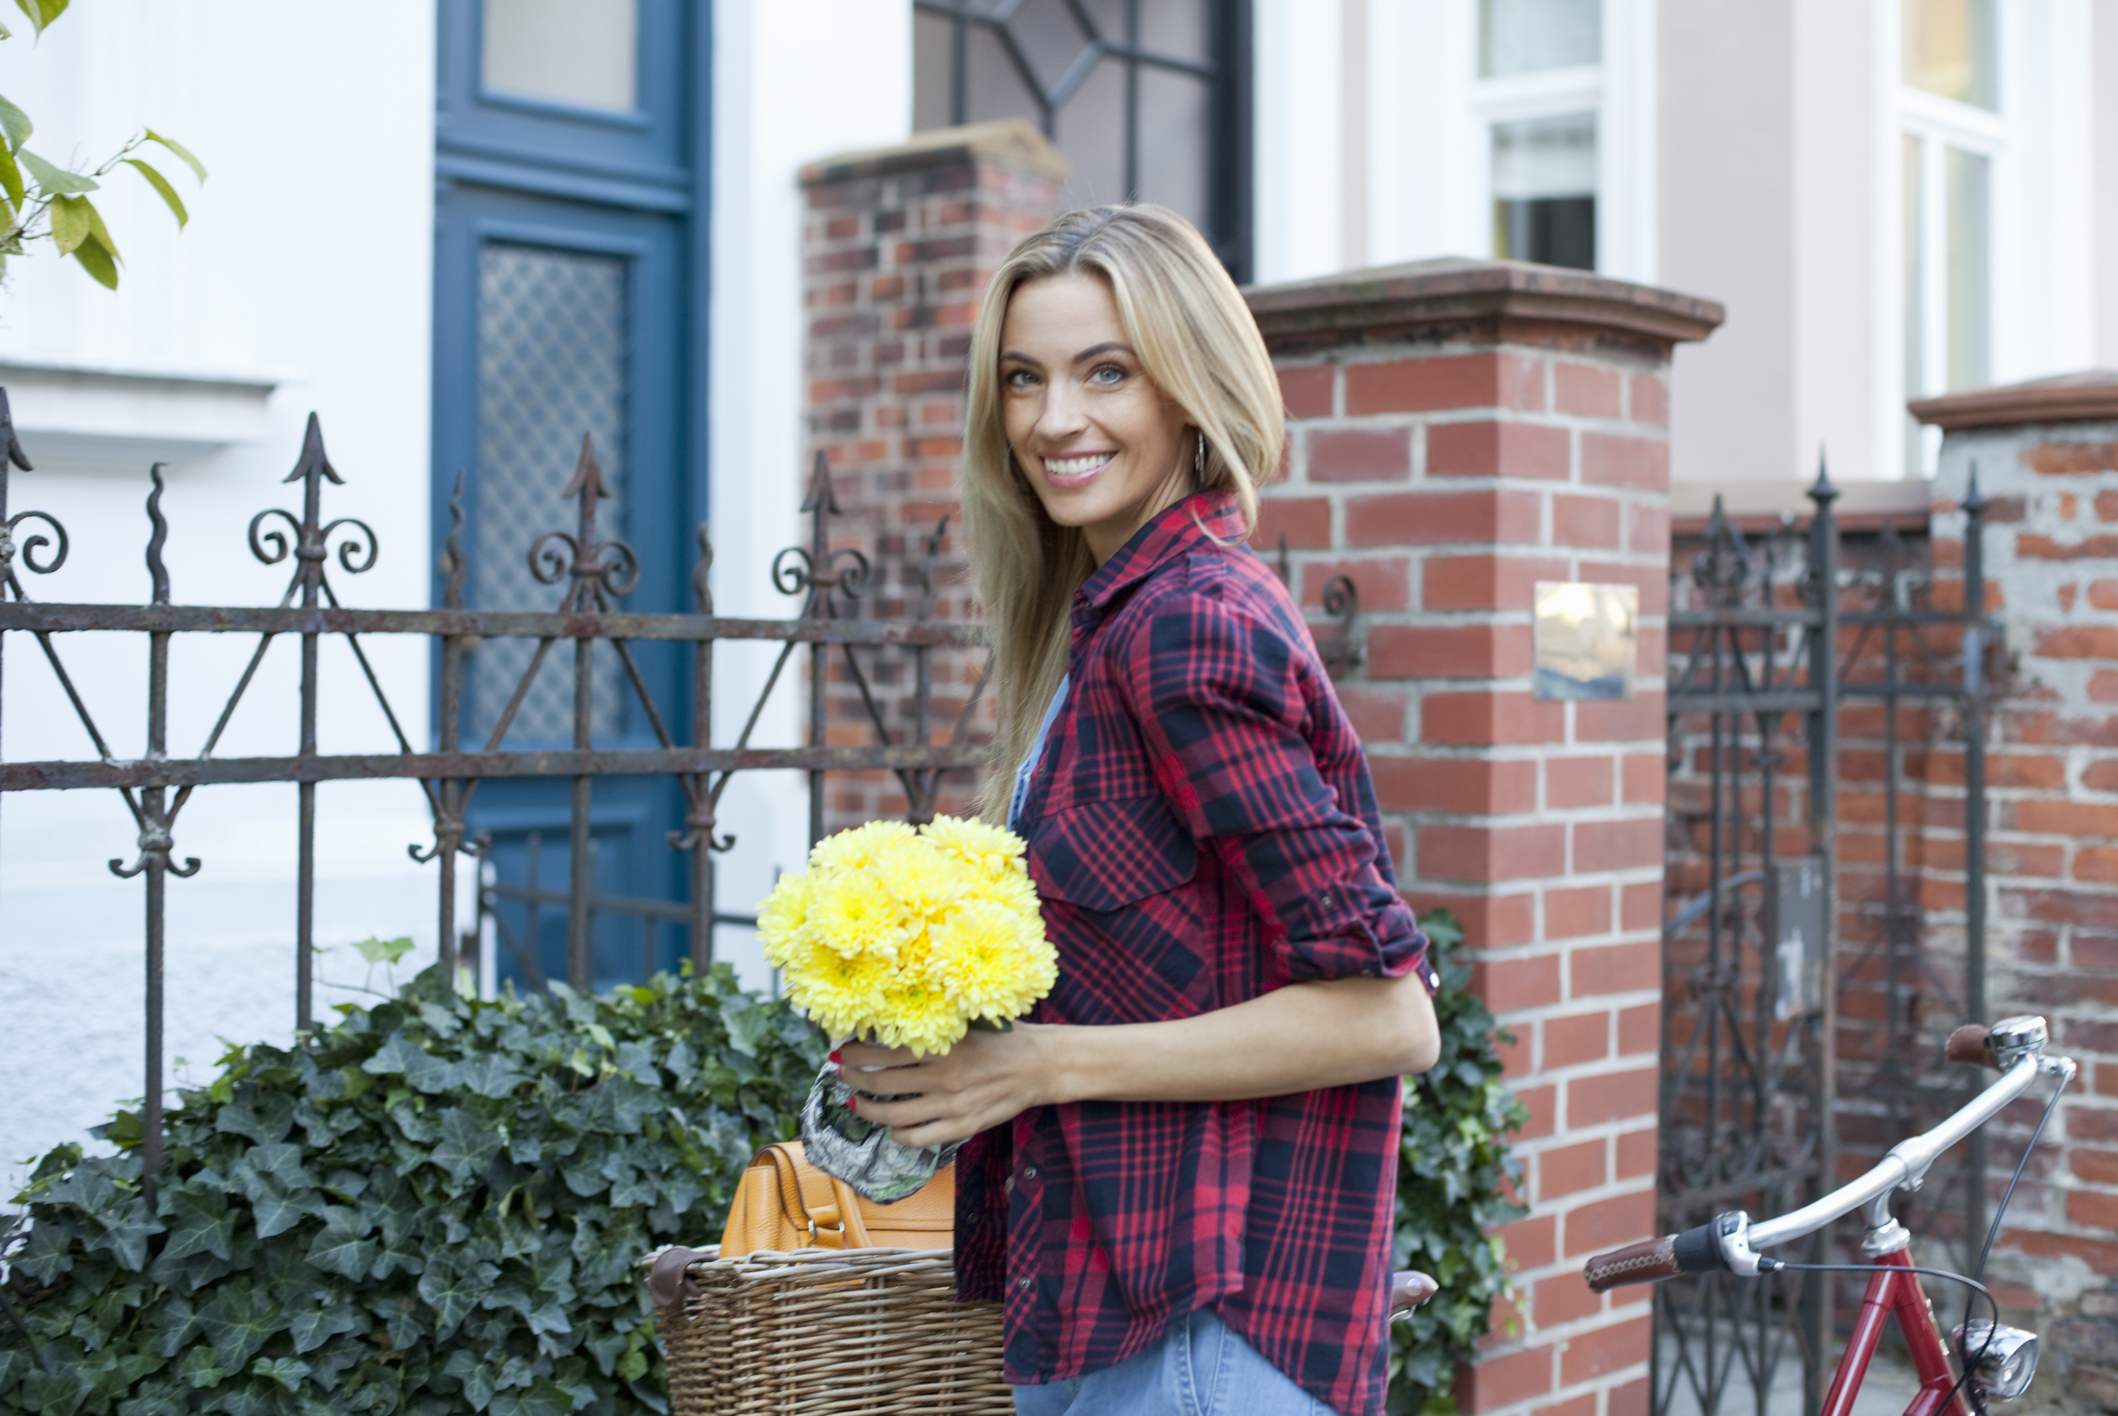 smiling woman with bicycle and fresh flowers